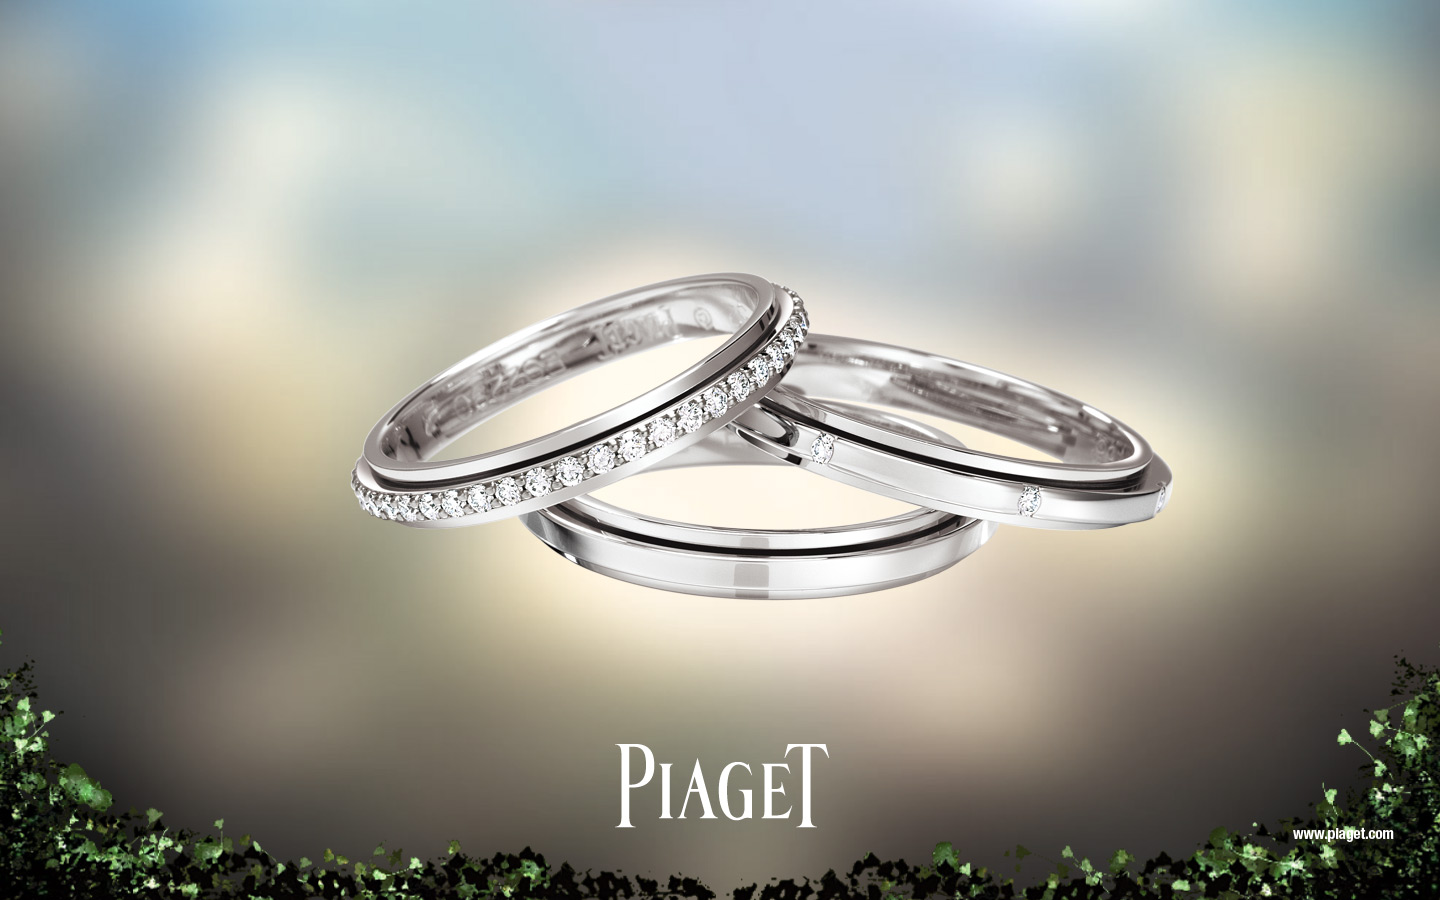 http://4.bp.blogspot.com/-UFtnlC_Zey4/TkfHr8qfxXI/AAAAAAAAE_8/YEoQM9Ts8wA/s1600/Piaget_Wedding_Rings_White_Gold_Diamonds.jpg